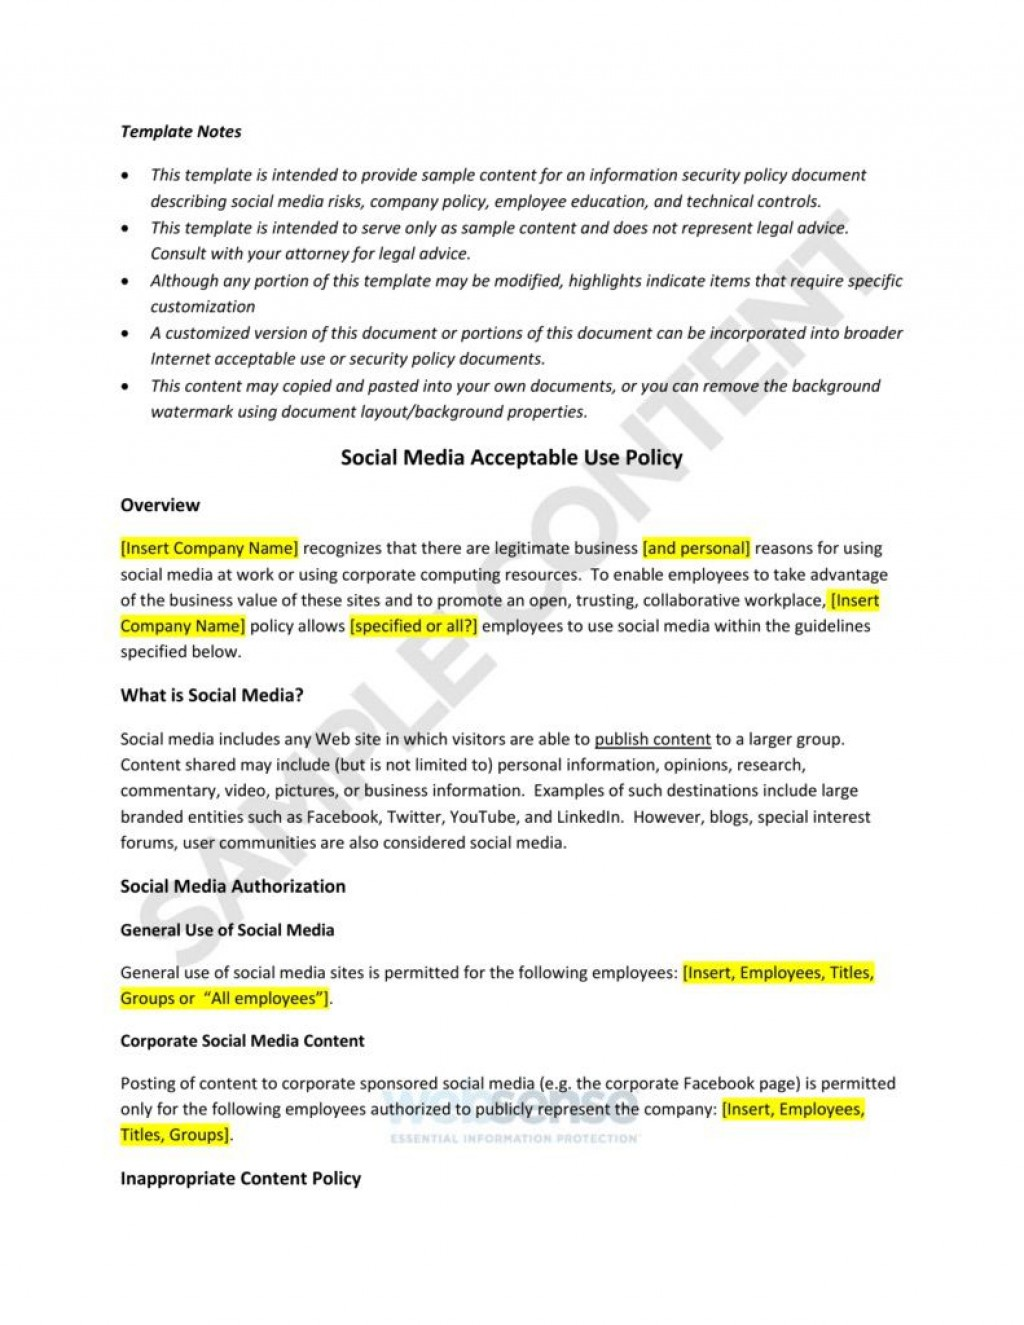 003 Amazing Social Media Policie Template High Definition  Policy For Small Busines Australia Employee Uk CounselorLarge